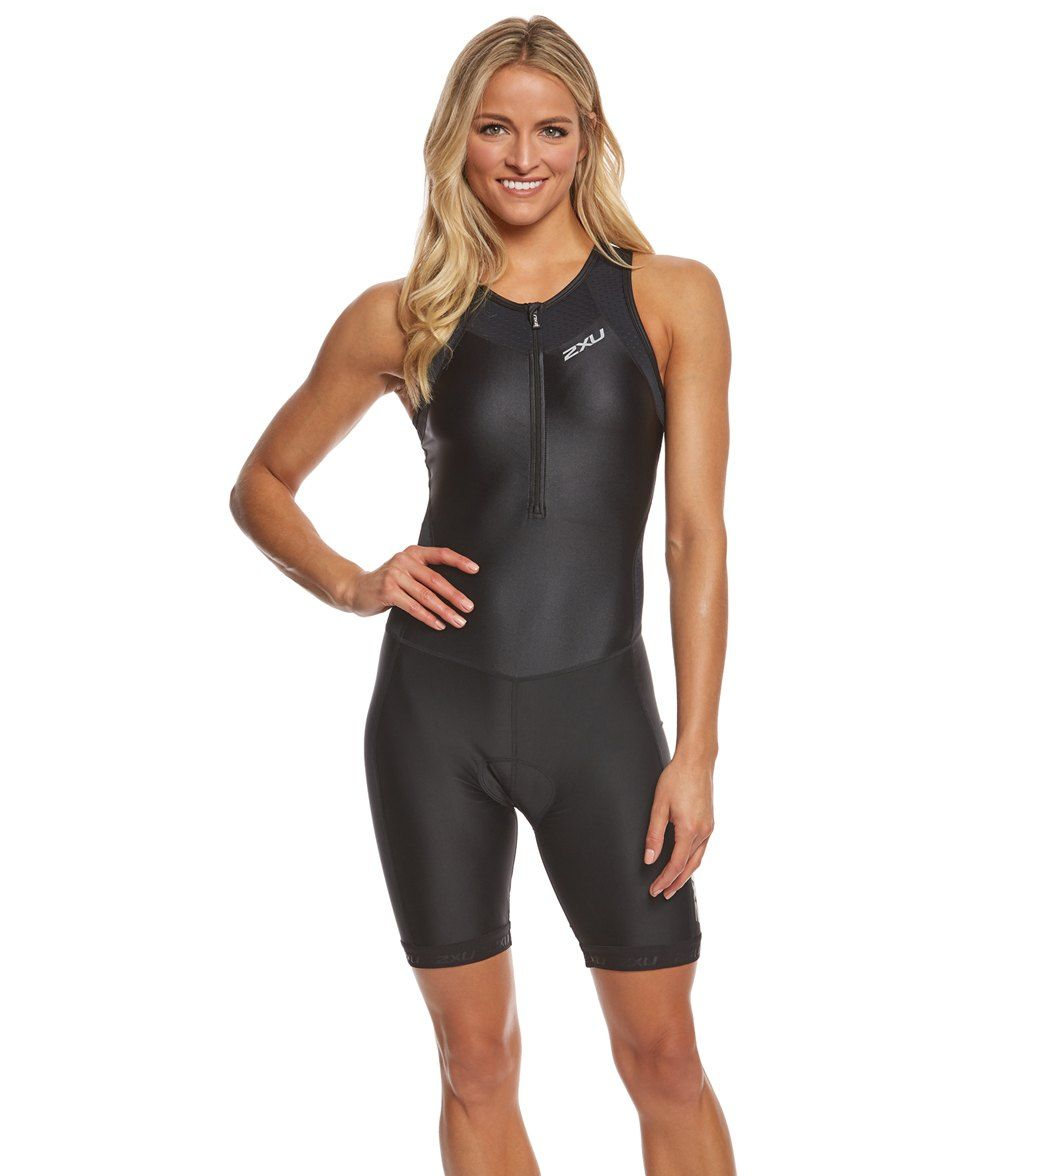 167ae59e39 The 2XU Women s X-Vent Front Zip Trisuit is performance –ready and infused  with tech to keep you cool and comfortable so you can focus solely ...